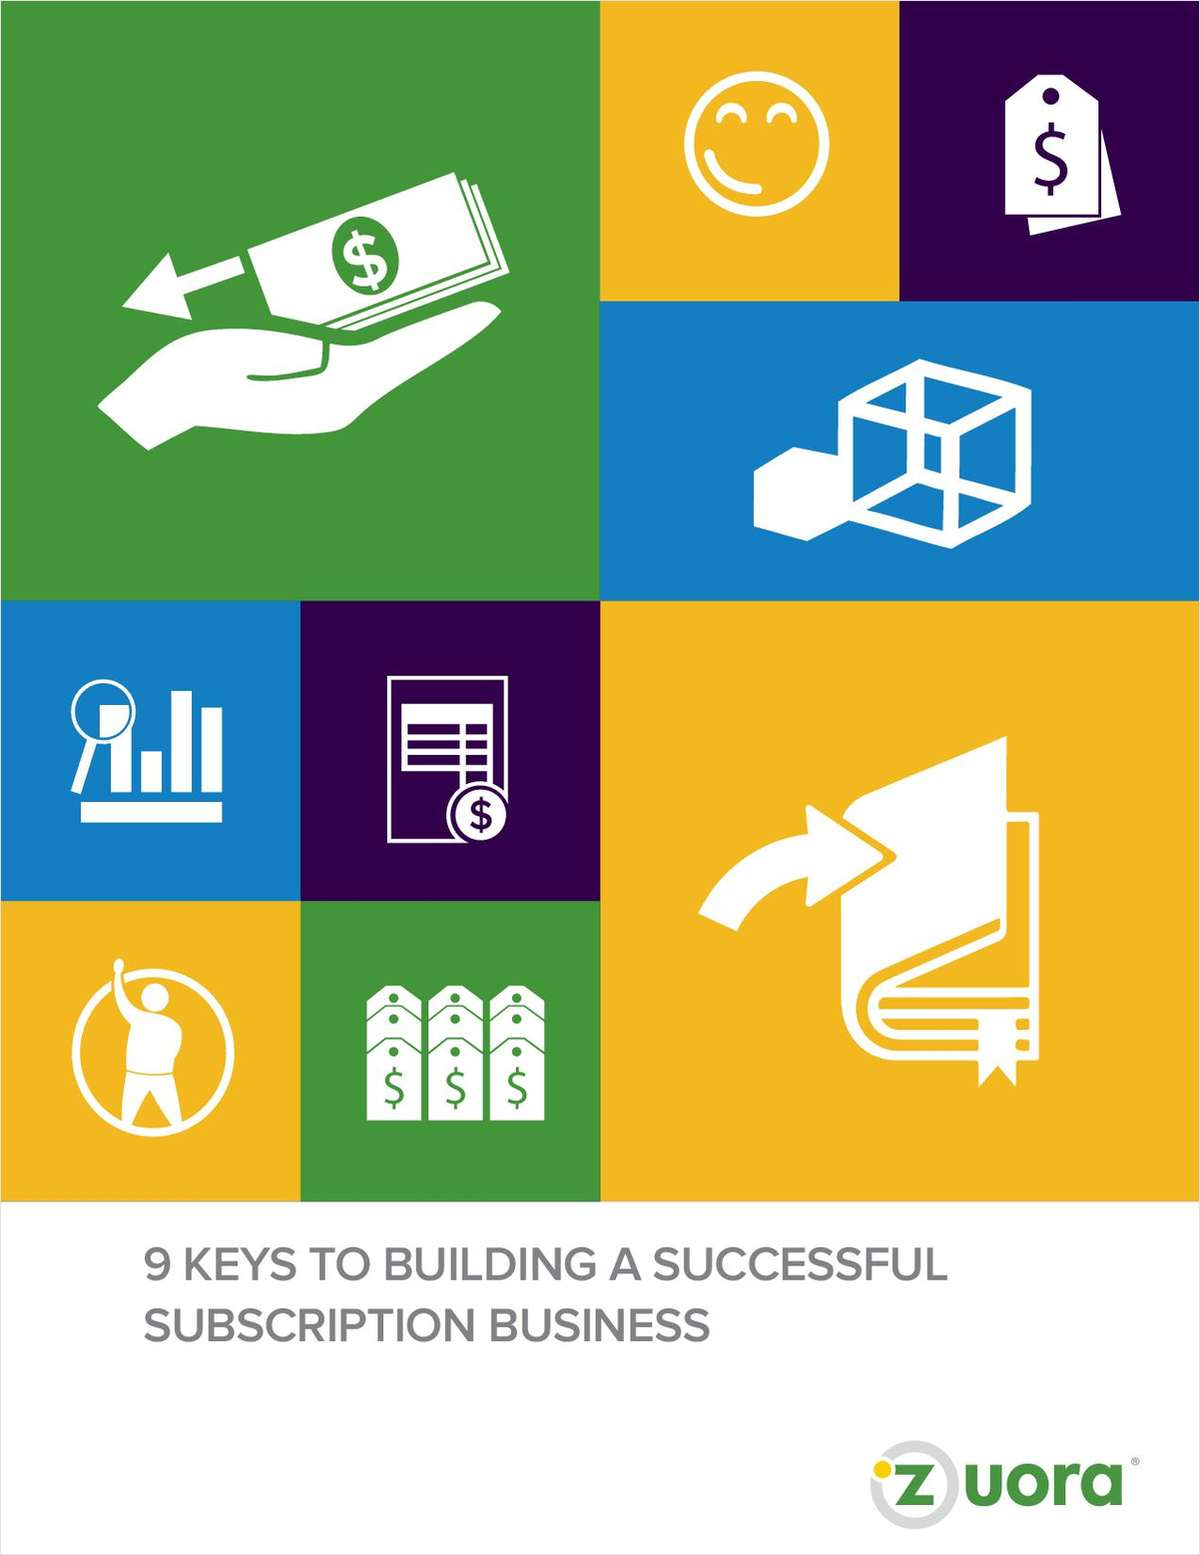 9 Keys to Building a Successful Subscription Business